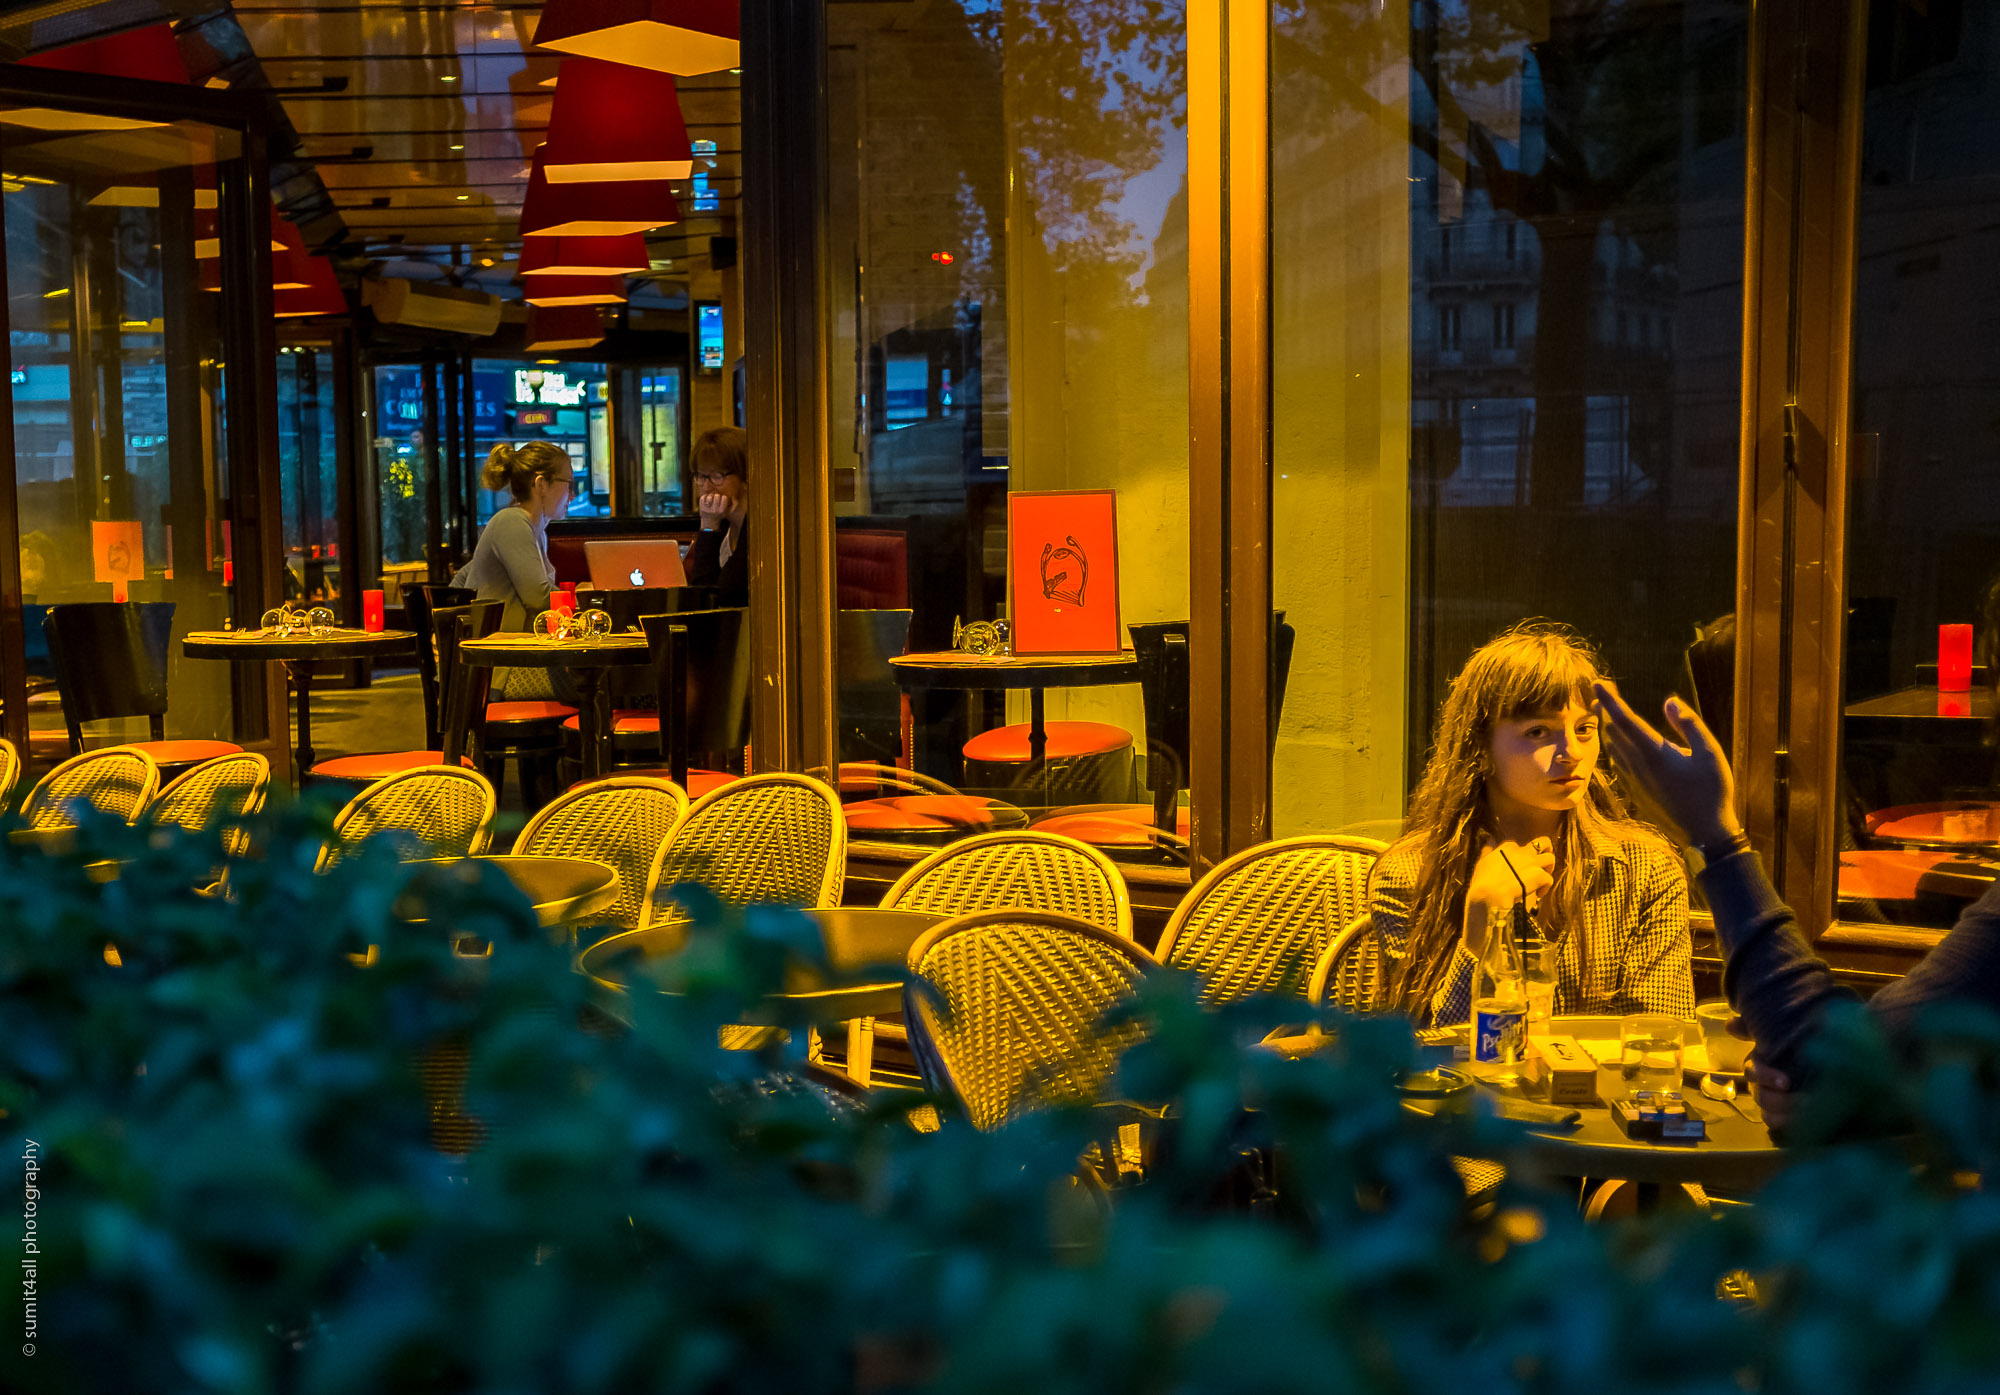 An Evening in a Paris Cafe